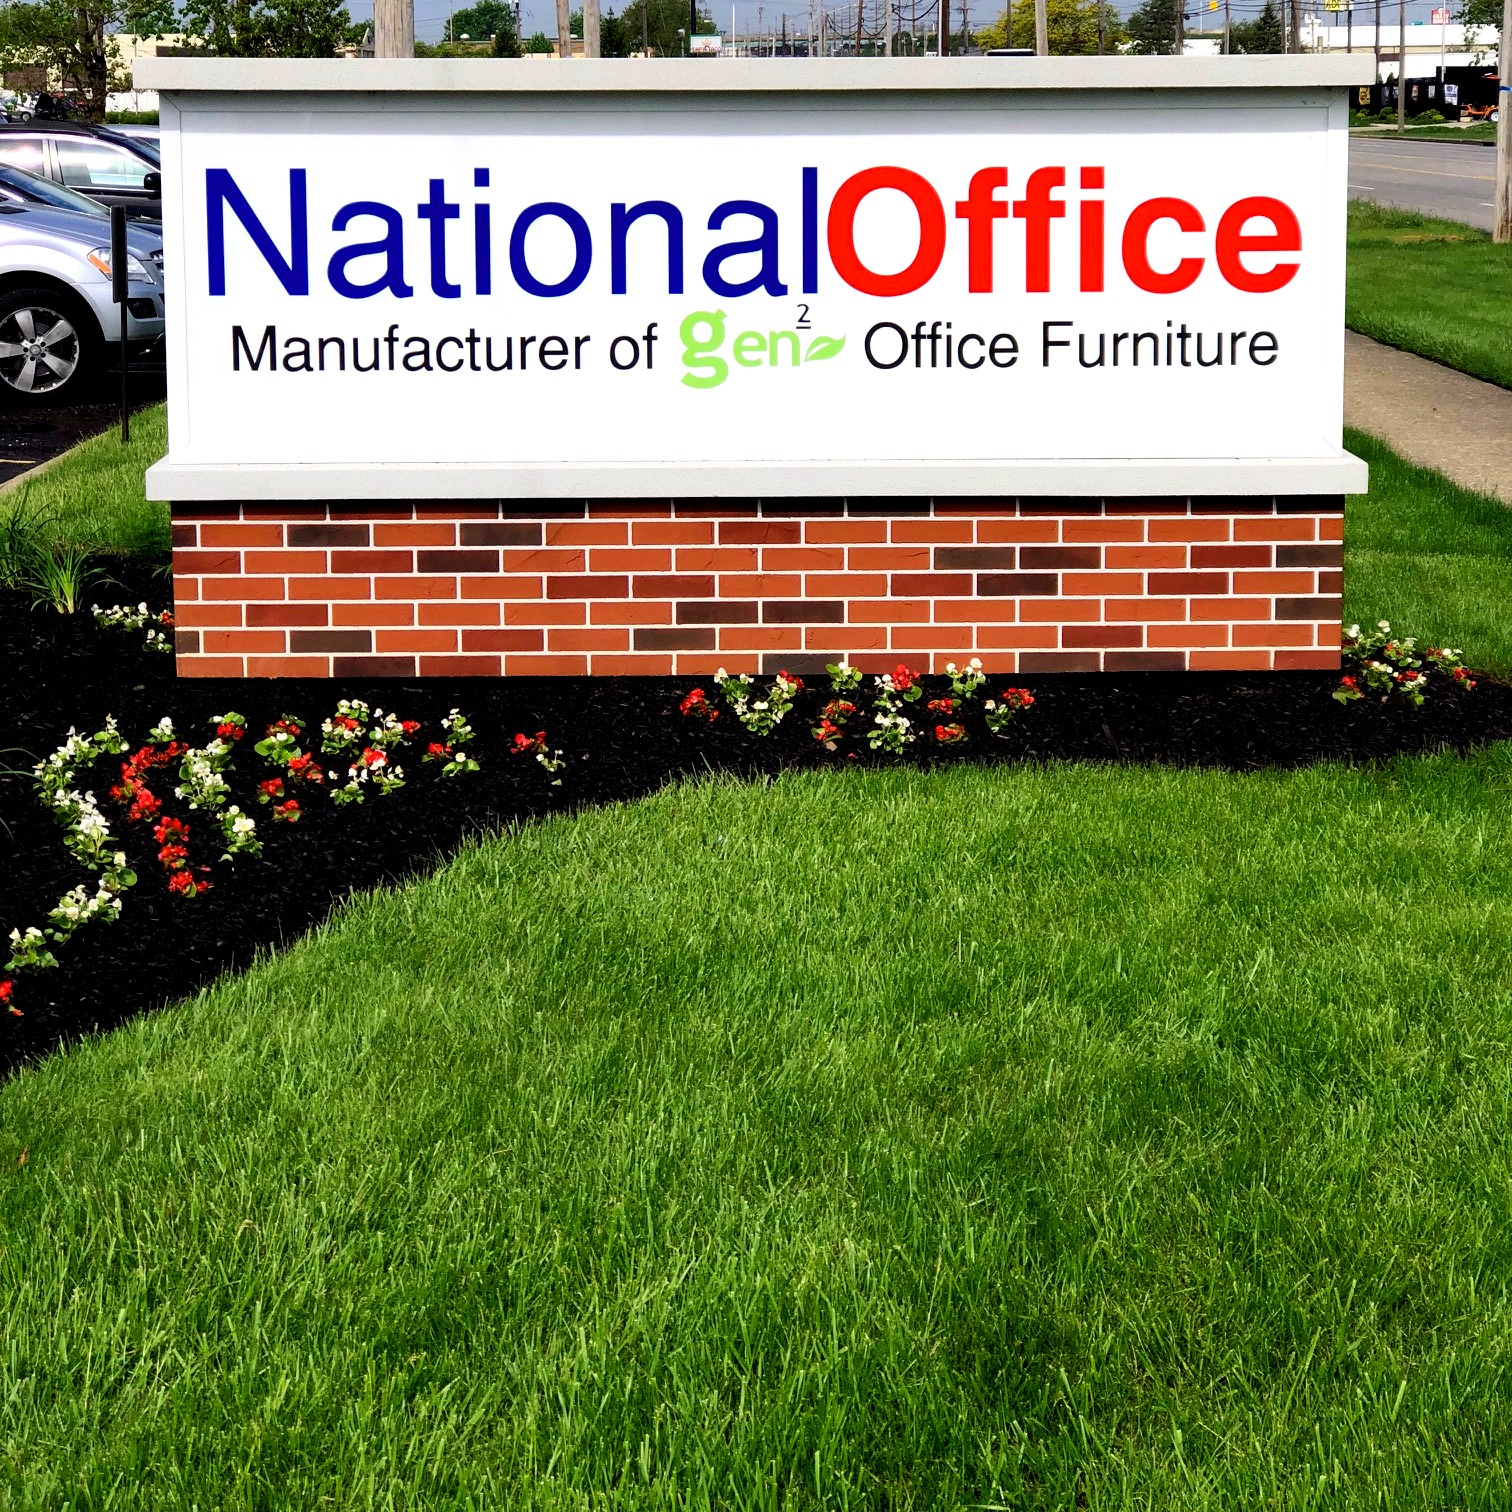 nos - national office - front sign